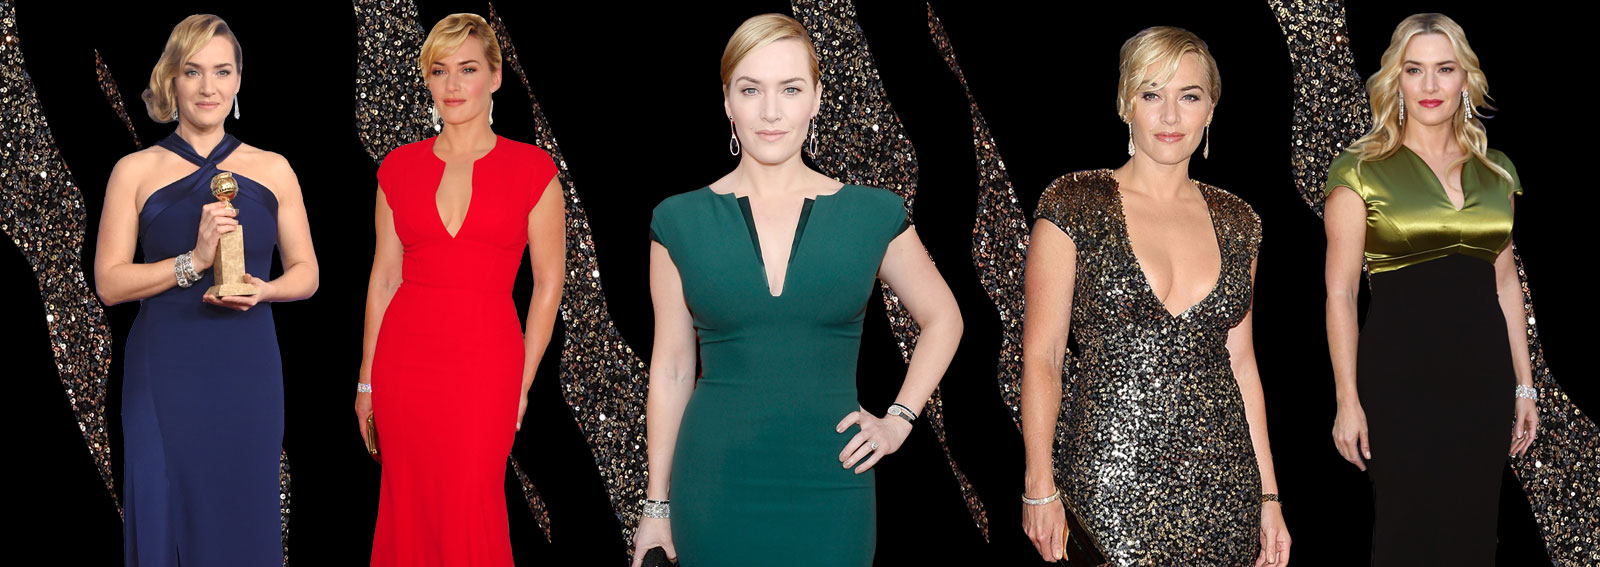 cover kate winslet i look più belli sul red carpet dekstop